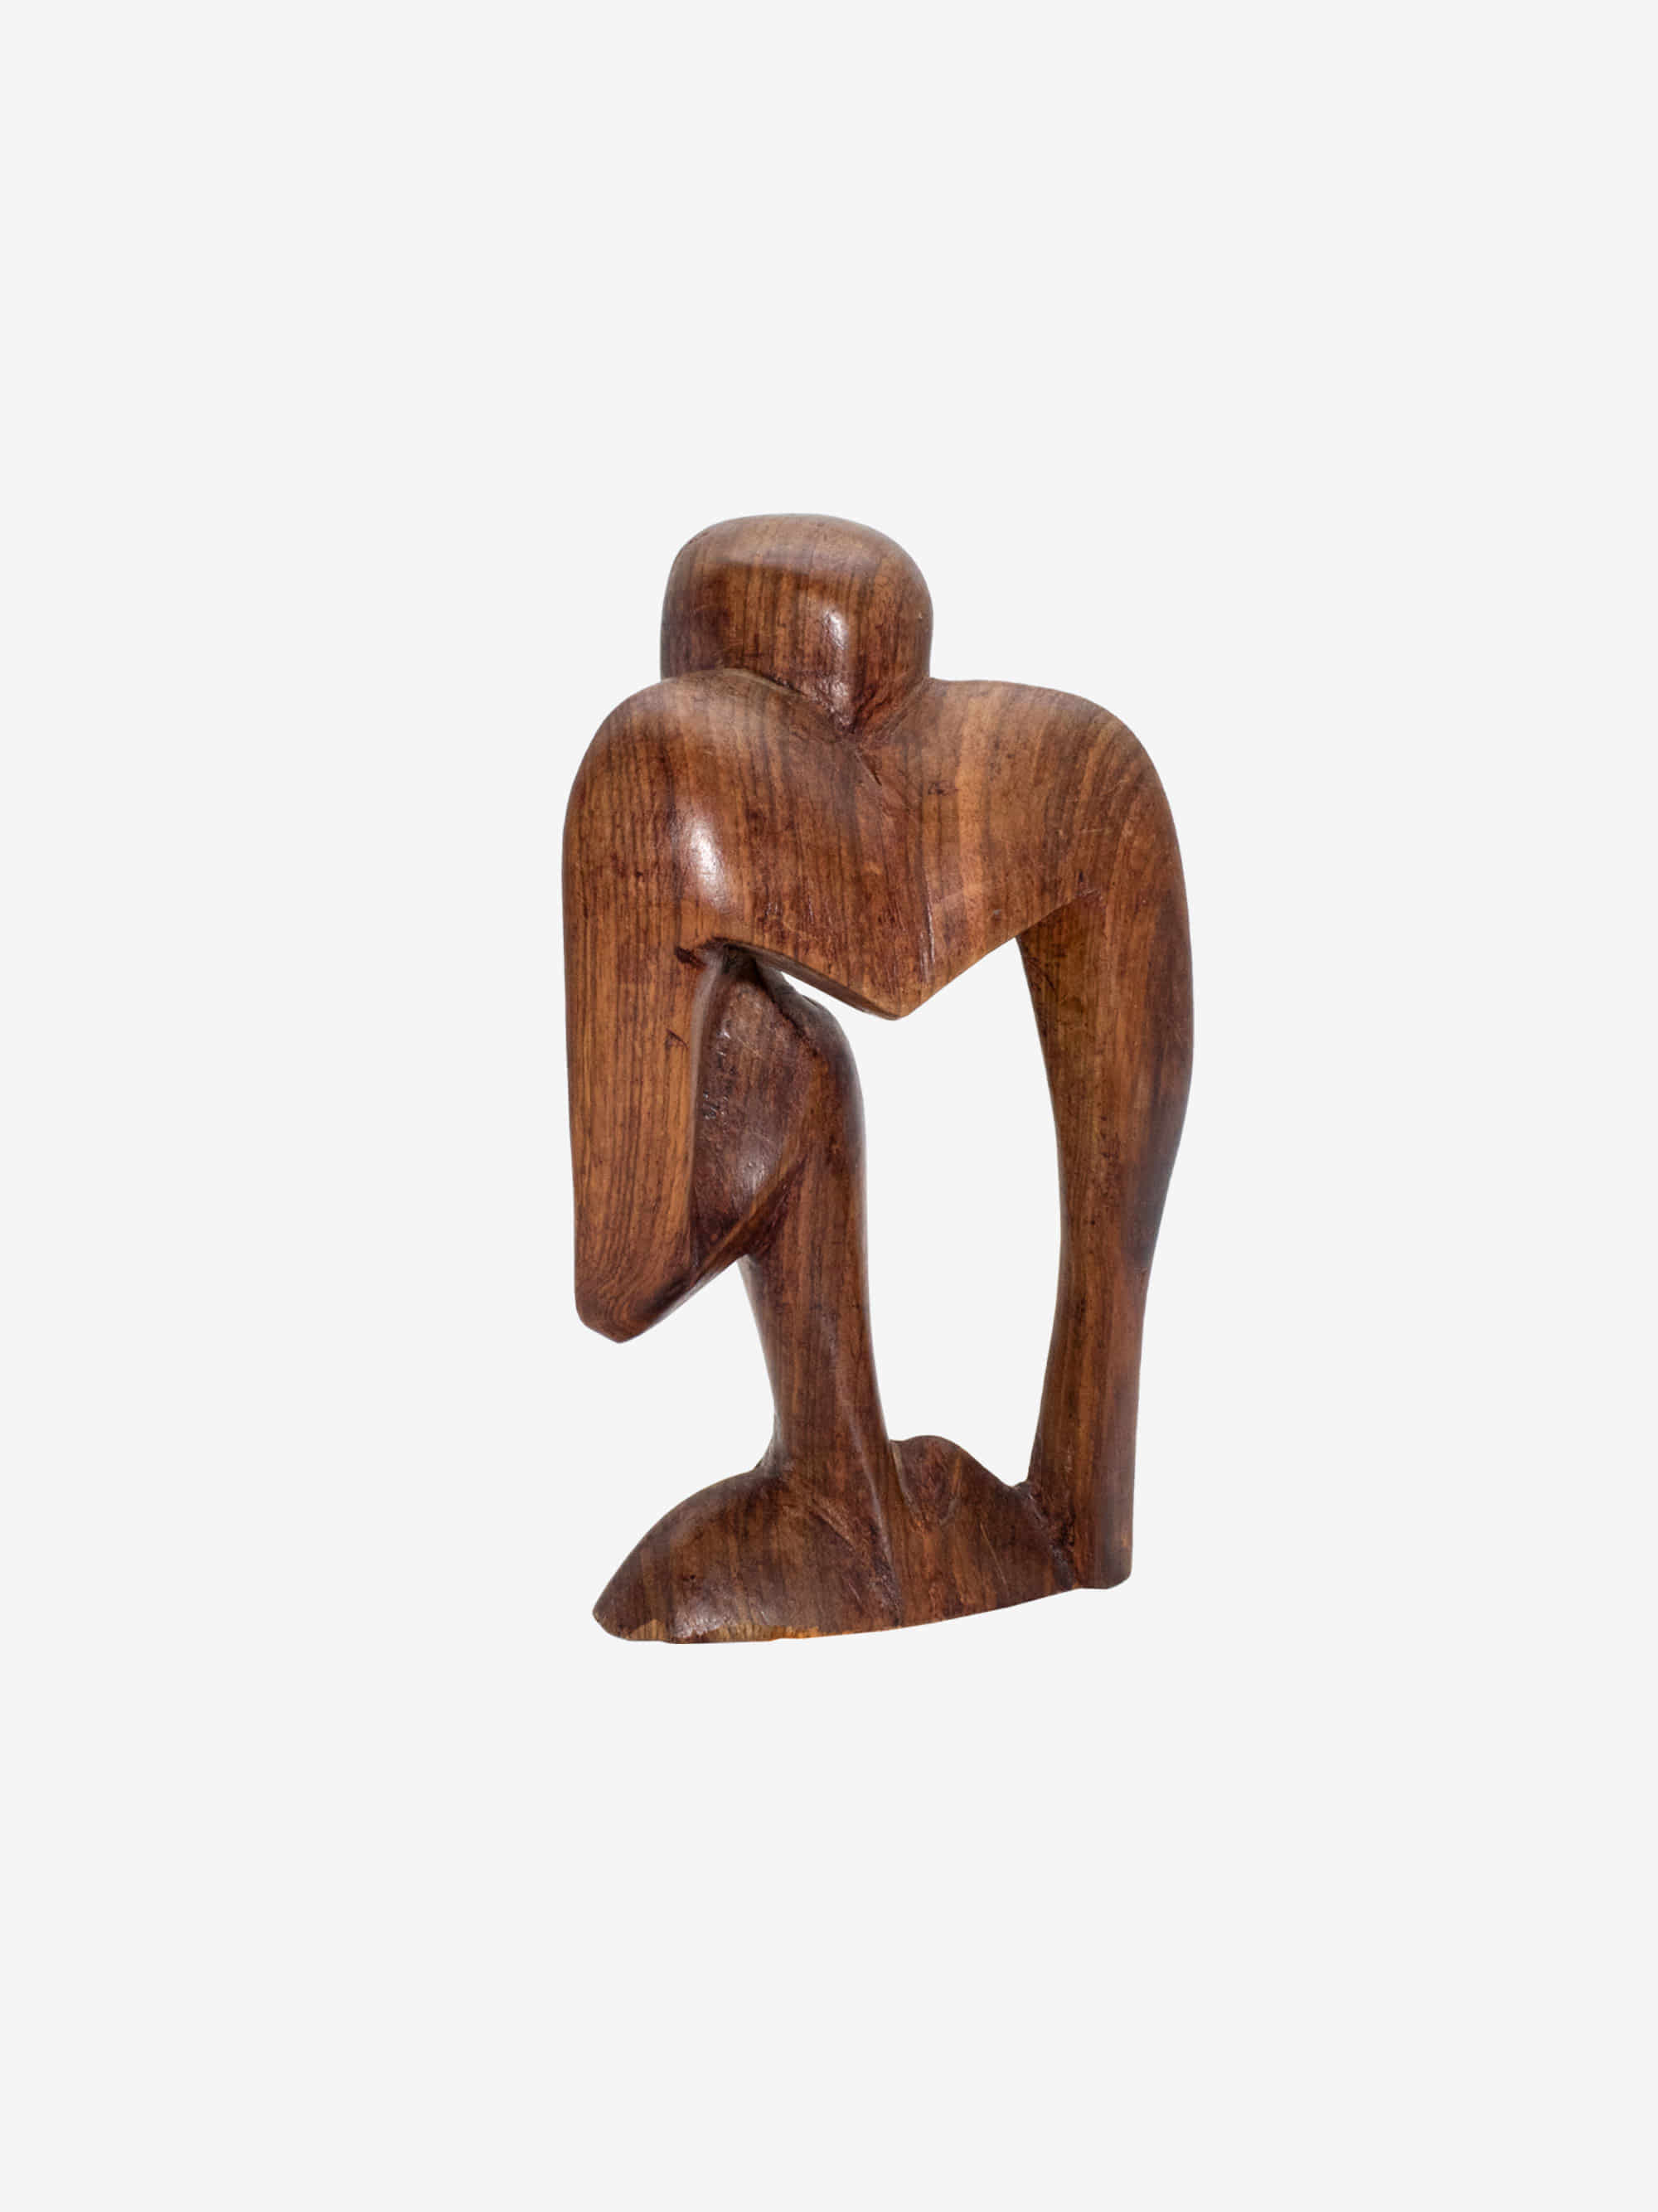 Vintage 1980s  Wooden Thinker Sculpture